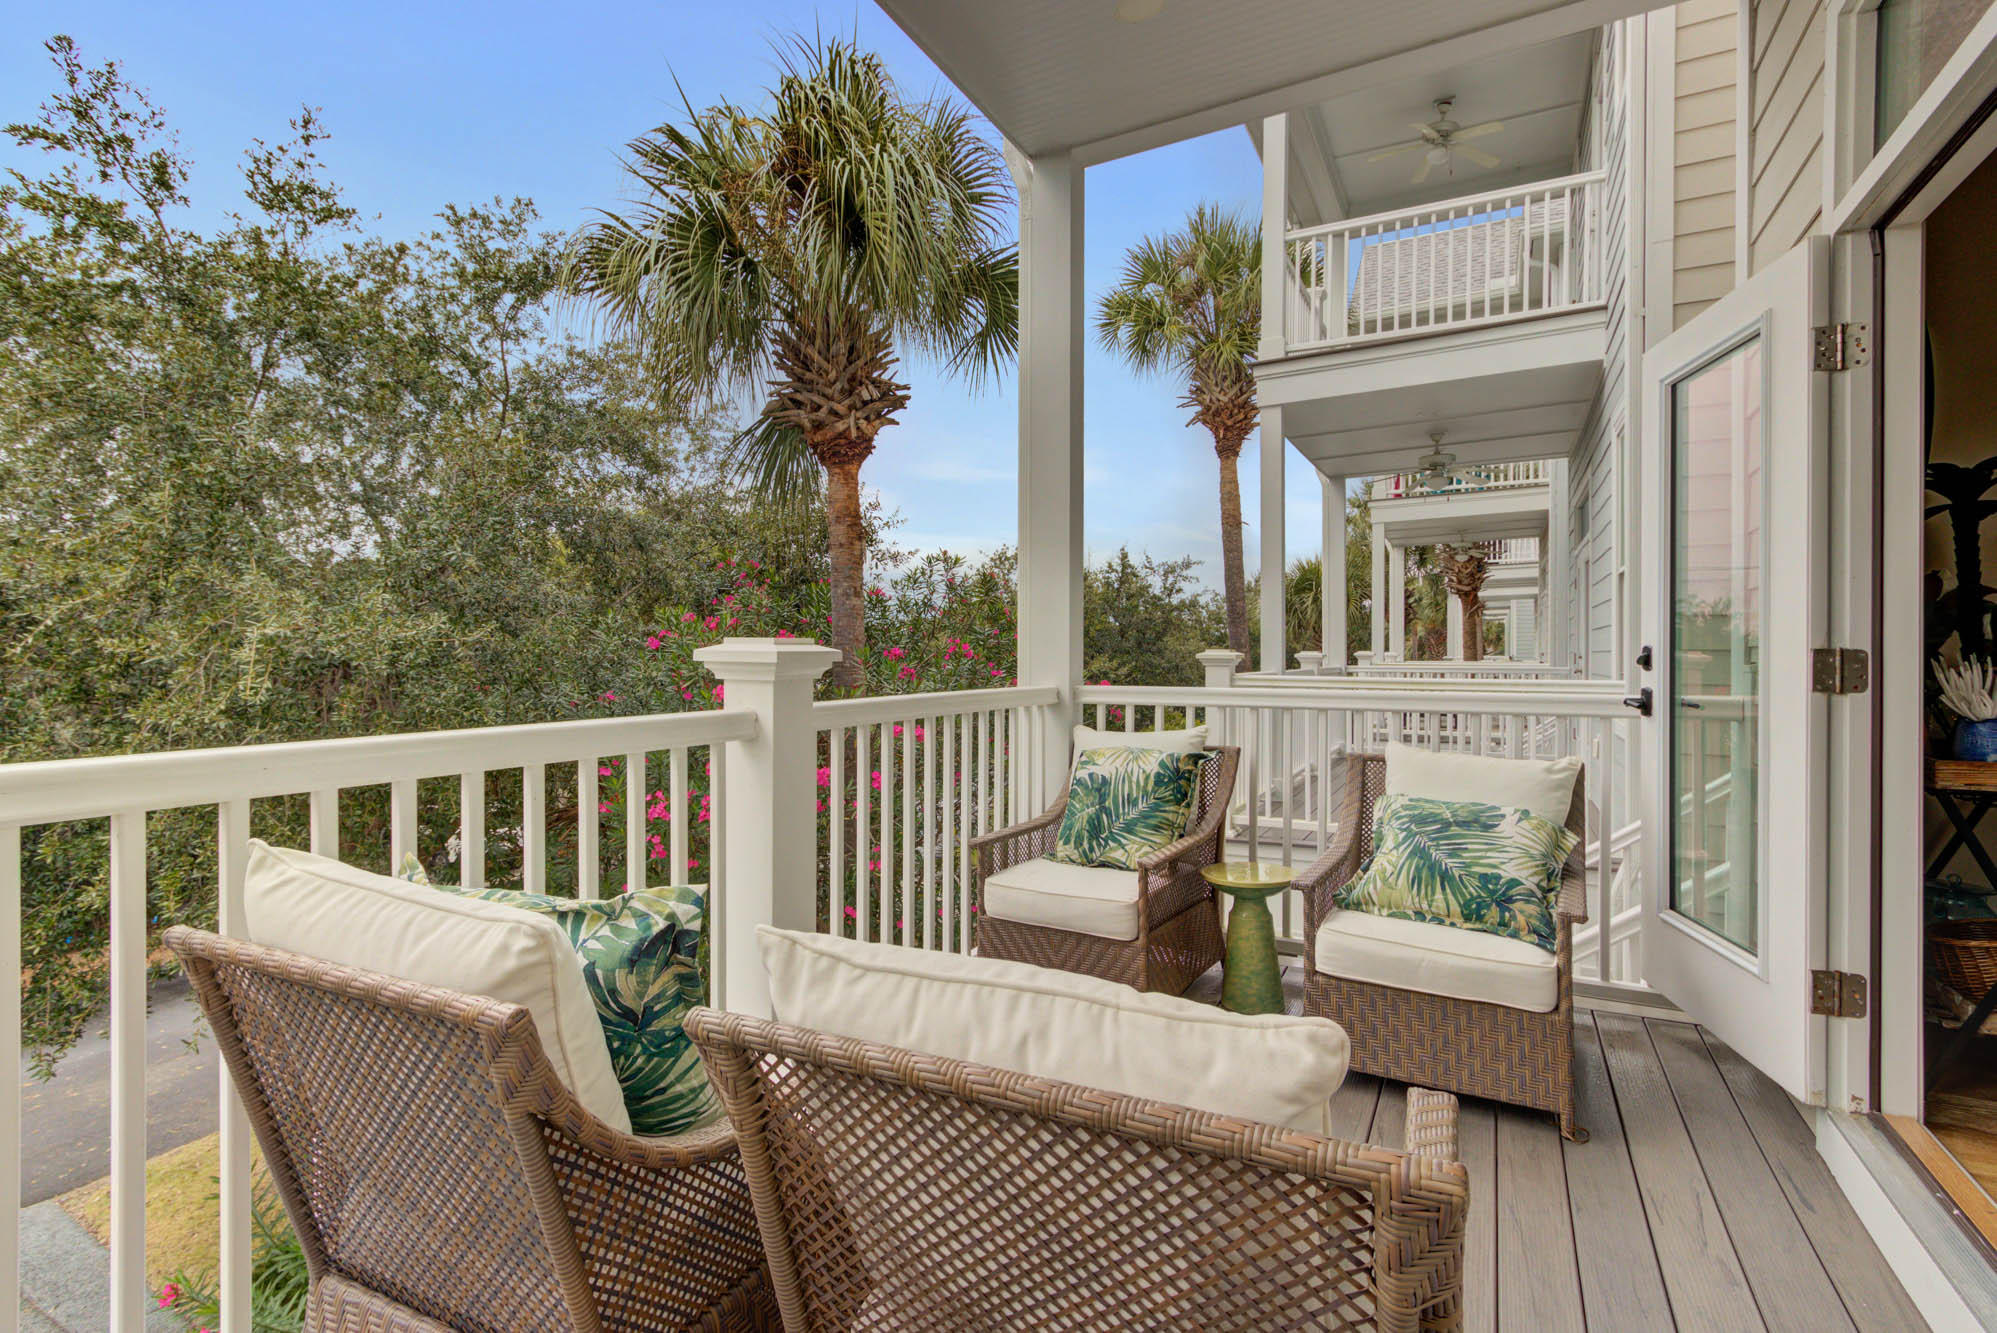 Folly Creek Place Homes For Sale - 2240 Folly, Folly Beach, SC - 30